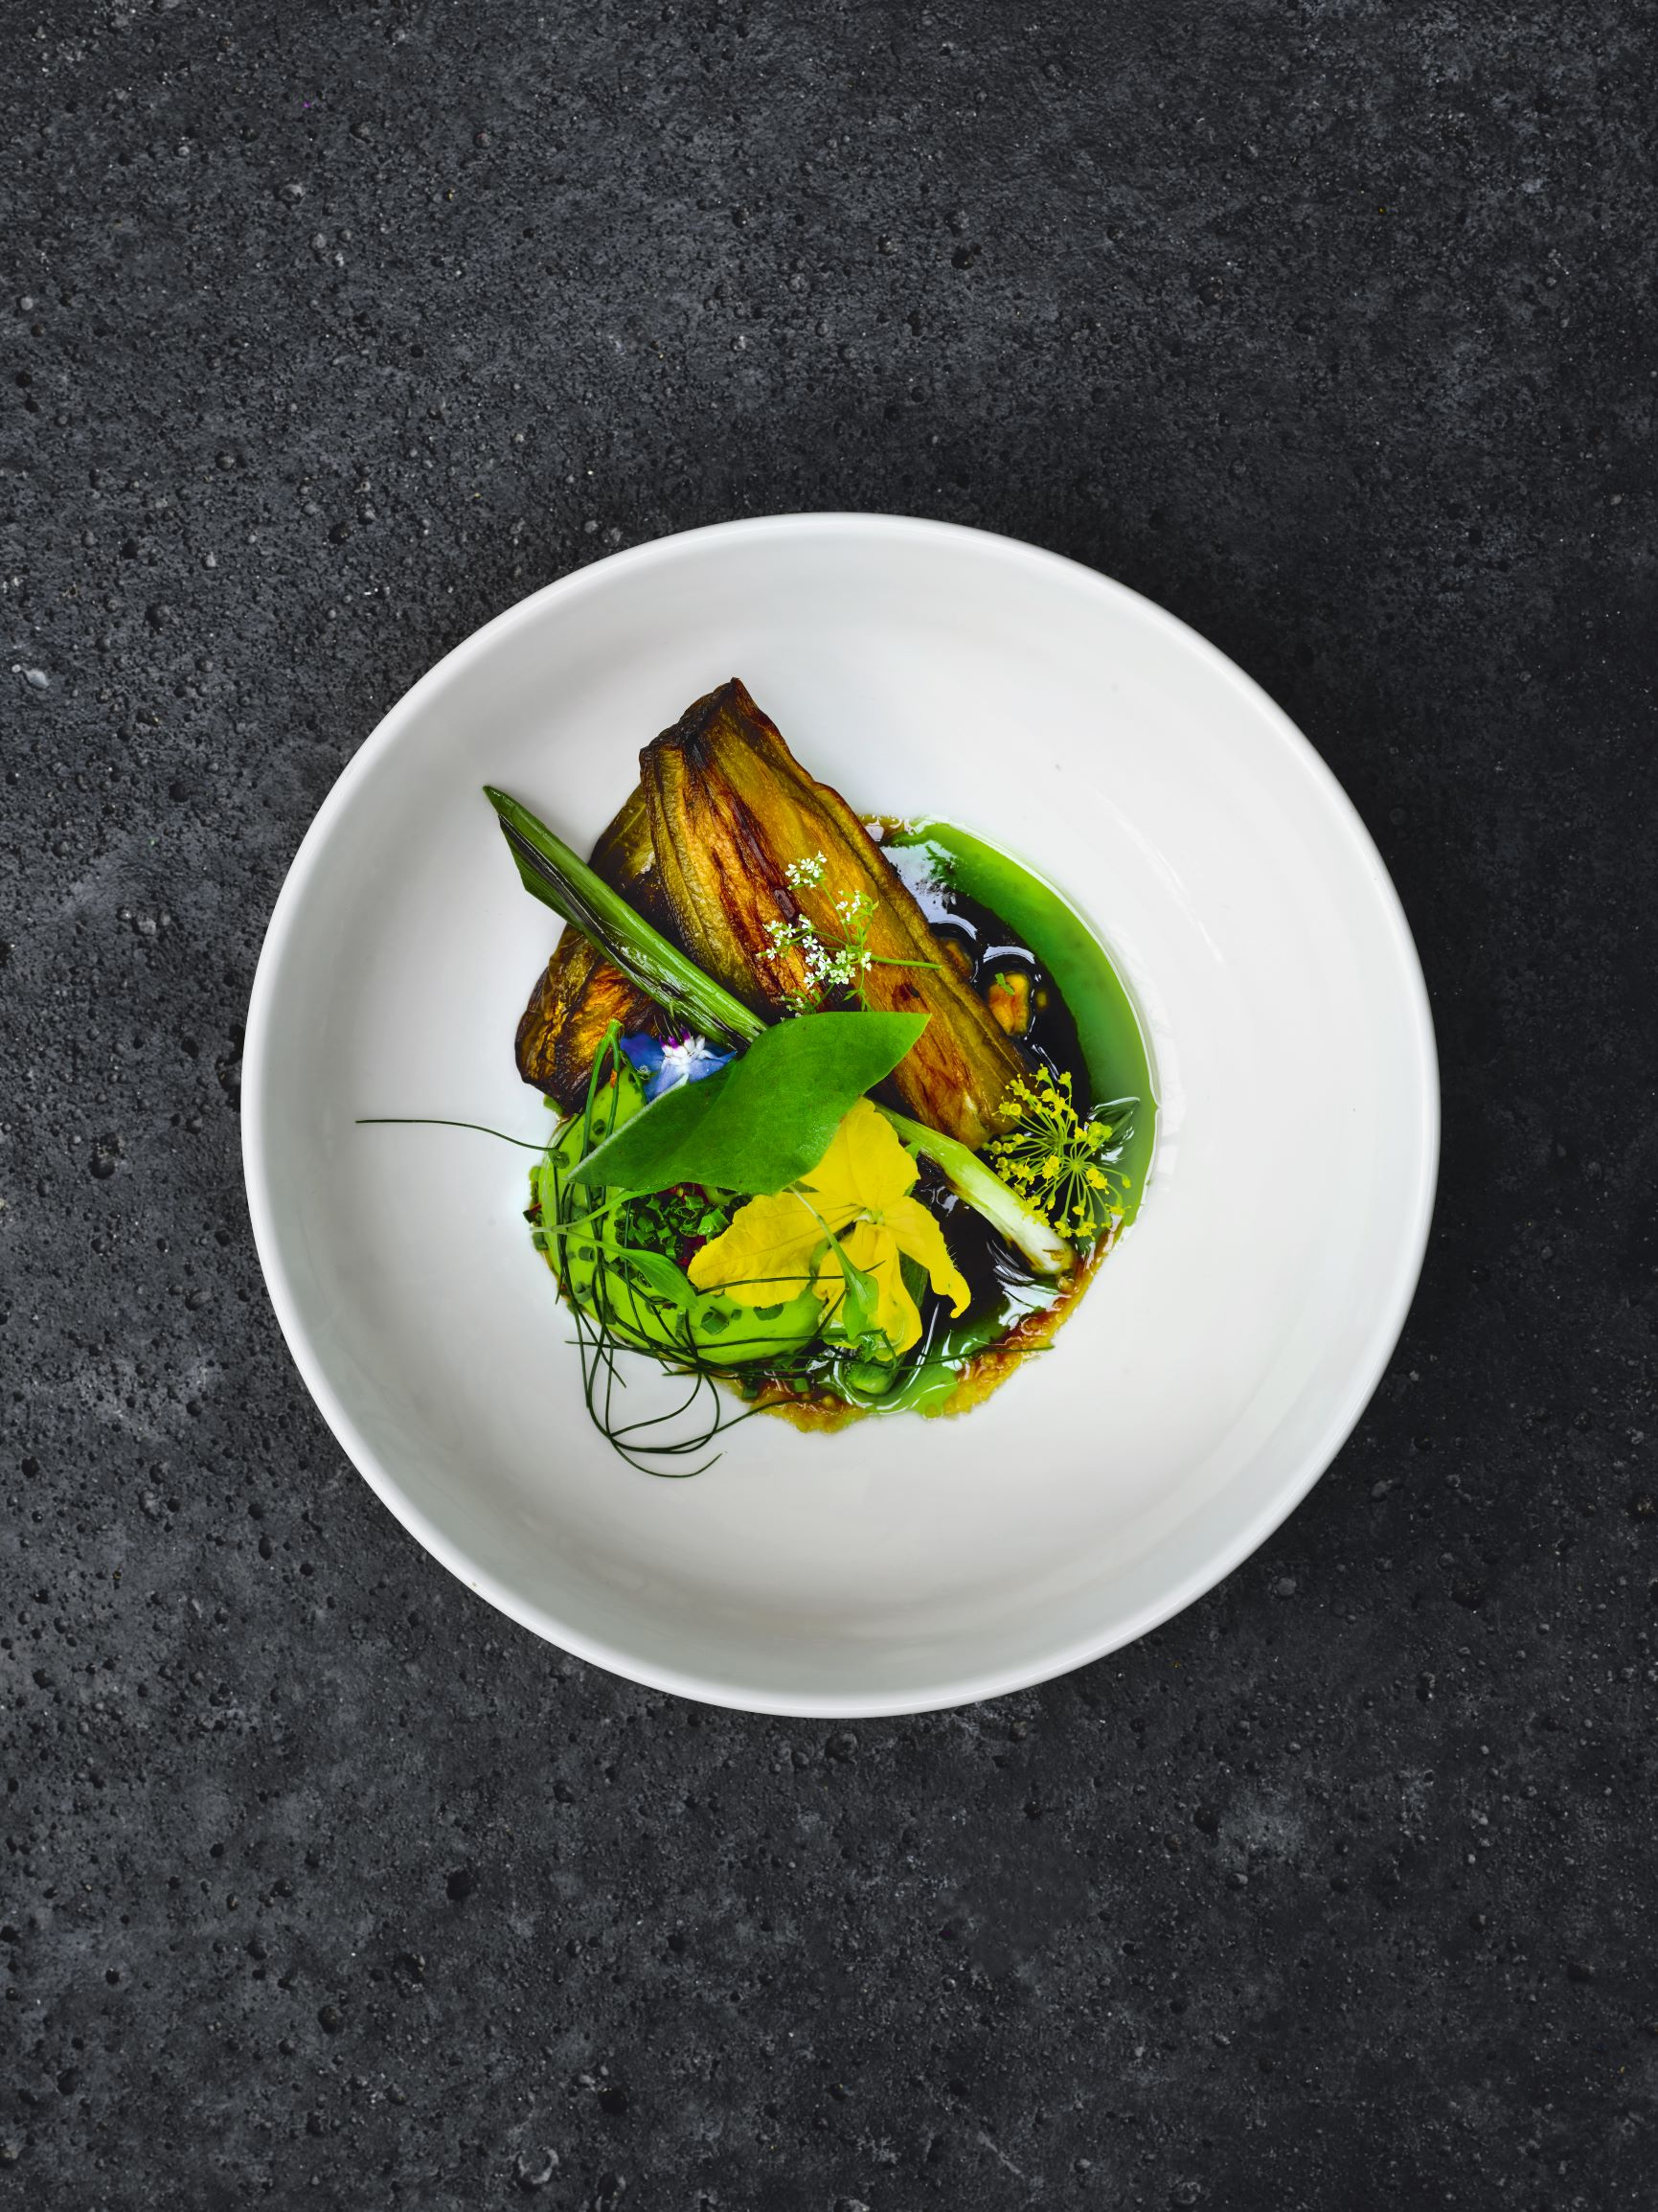 Barbecued eggplant, with peanut vinaigrette, green curry and herbs